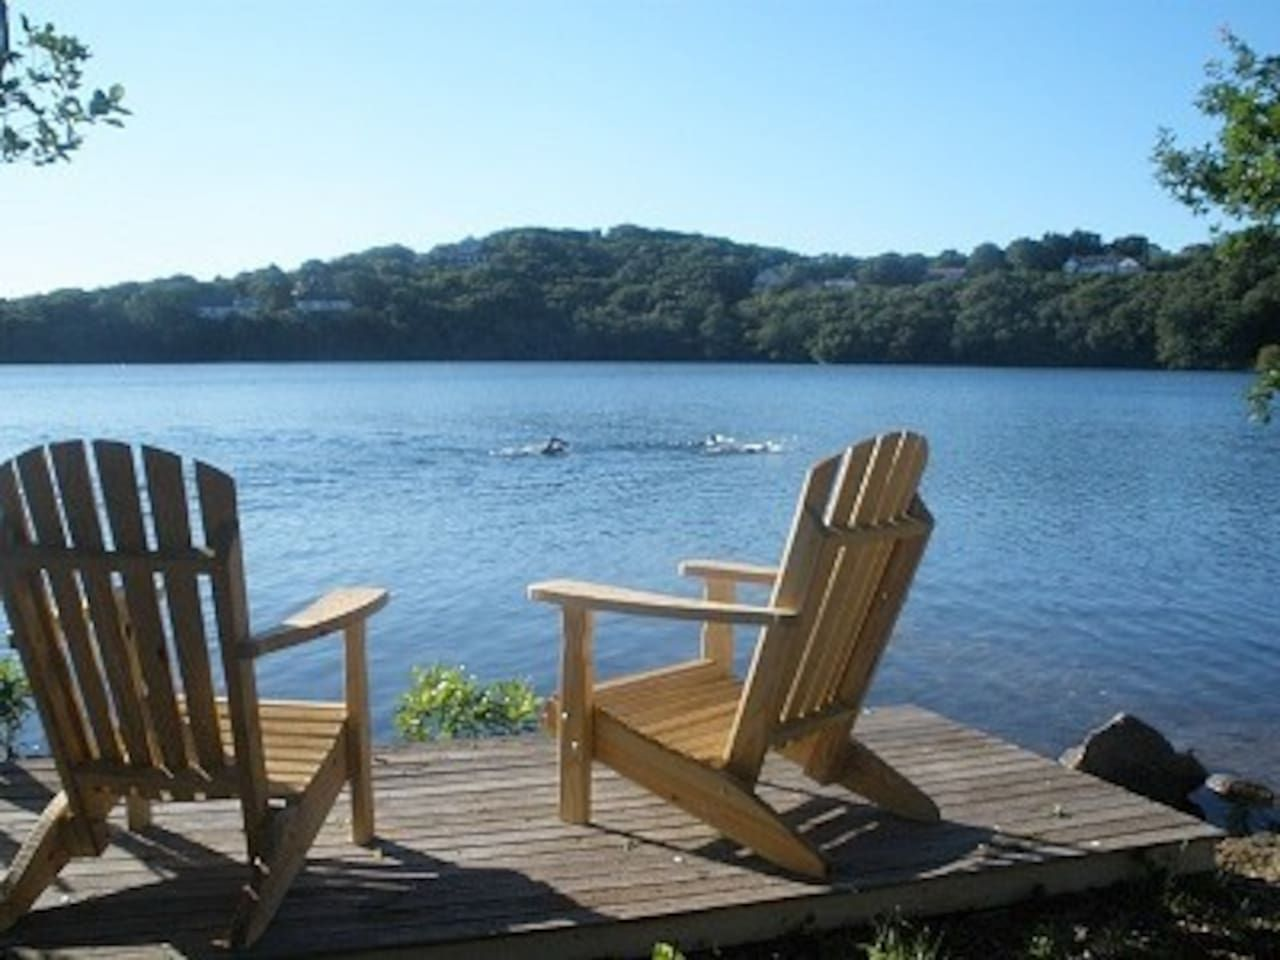 Genuine Cape Cod Cottage on a Lake Houses for Rent in